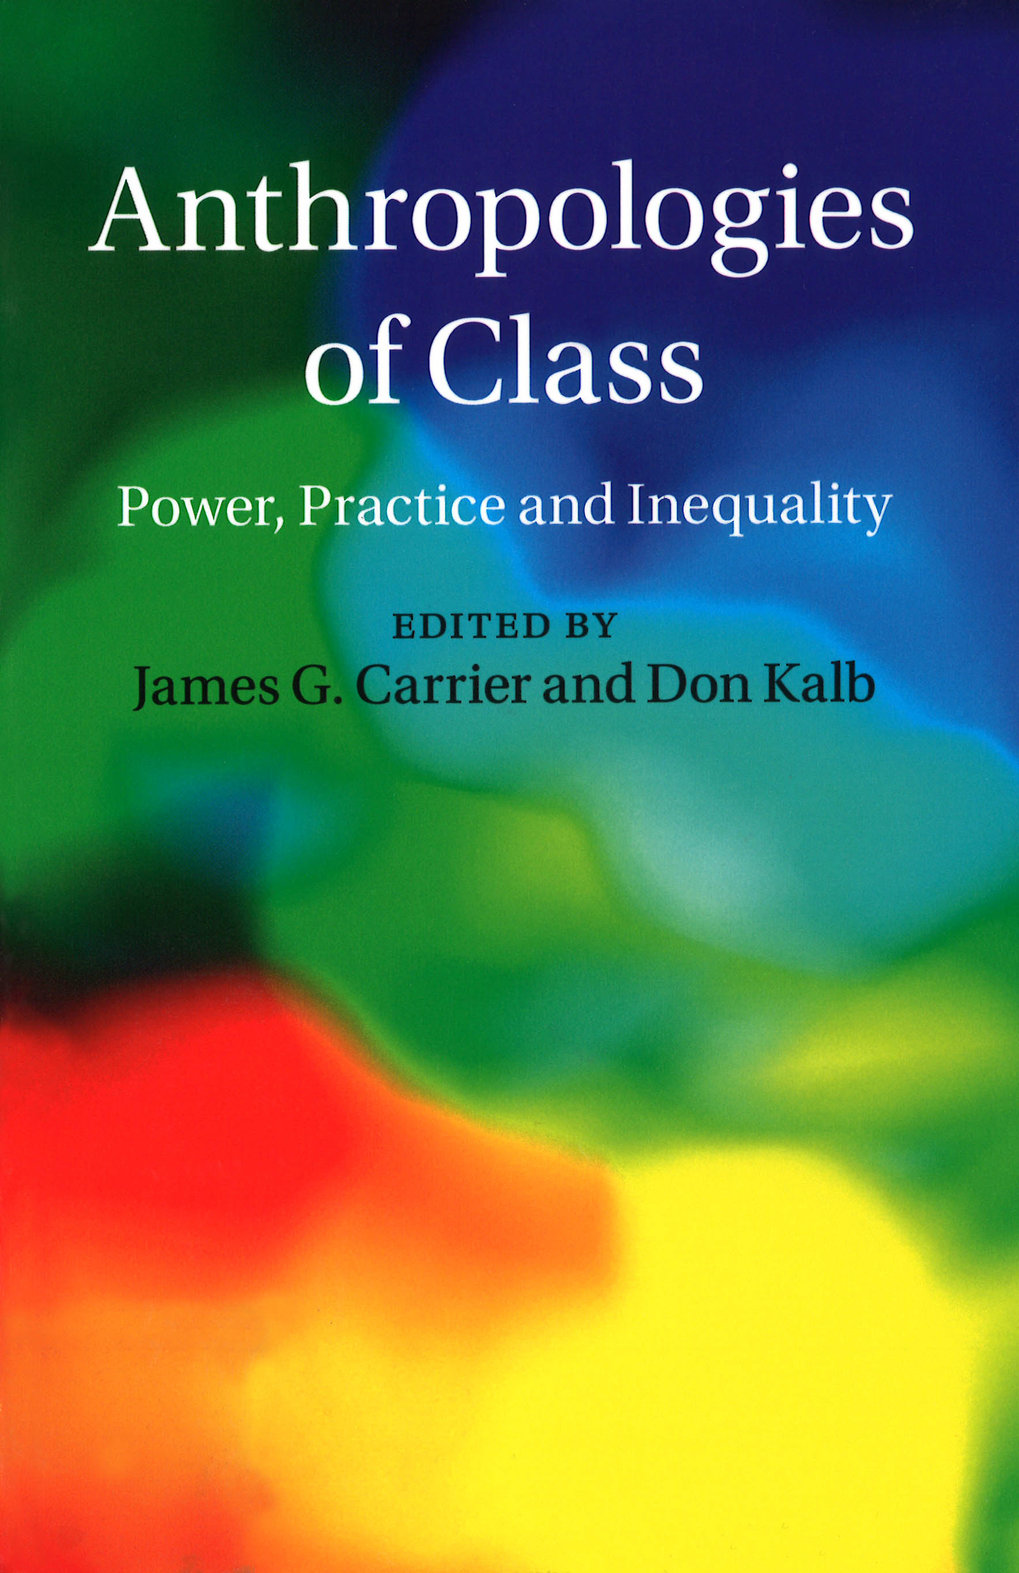 Anthropologies of Class. Power, practice, and inequality